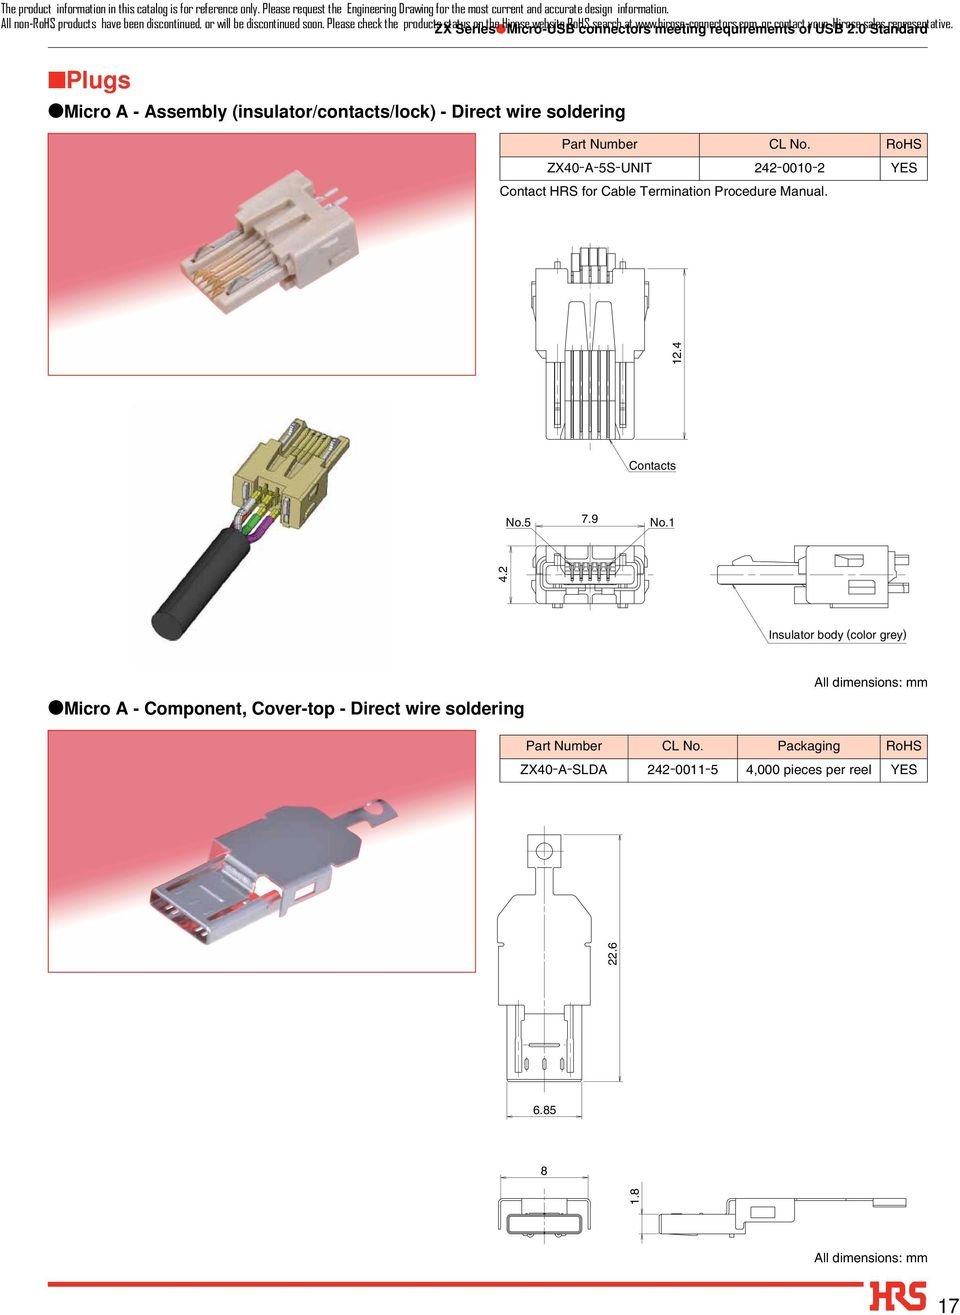 com, meeting requirements or contact of your USB Hirose 2.0 sales Standard representative.